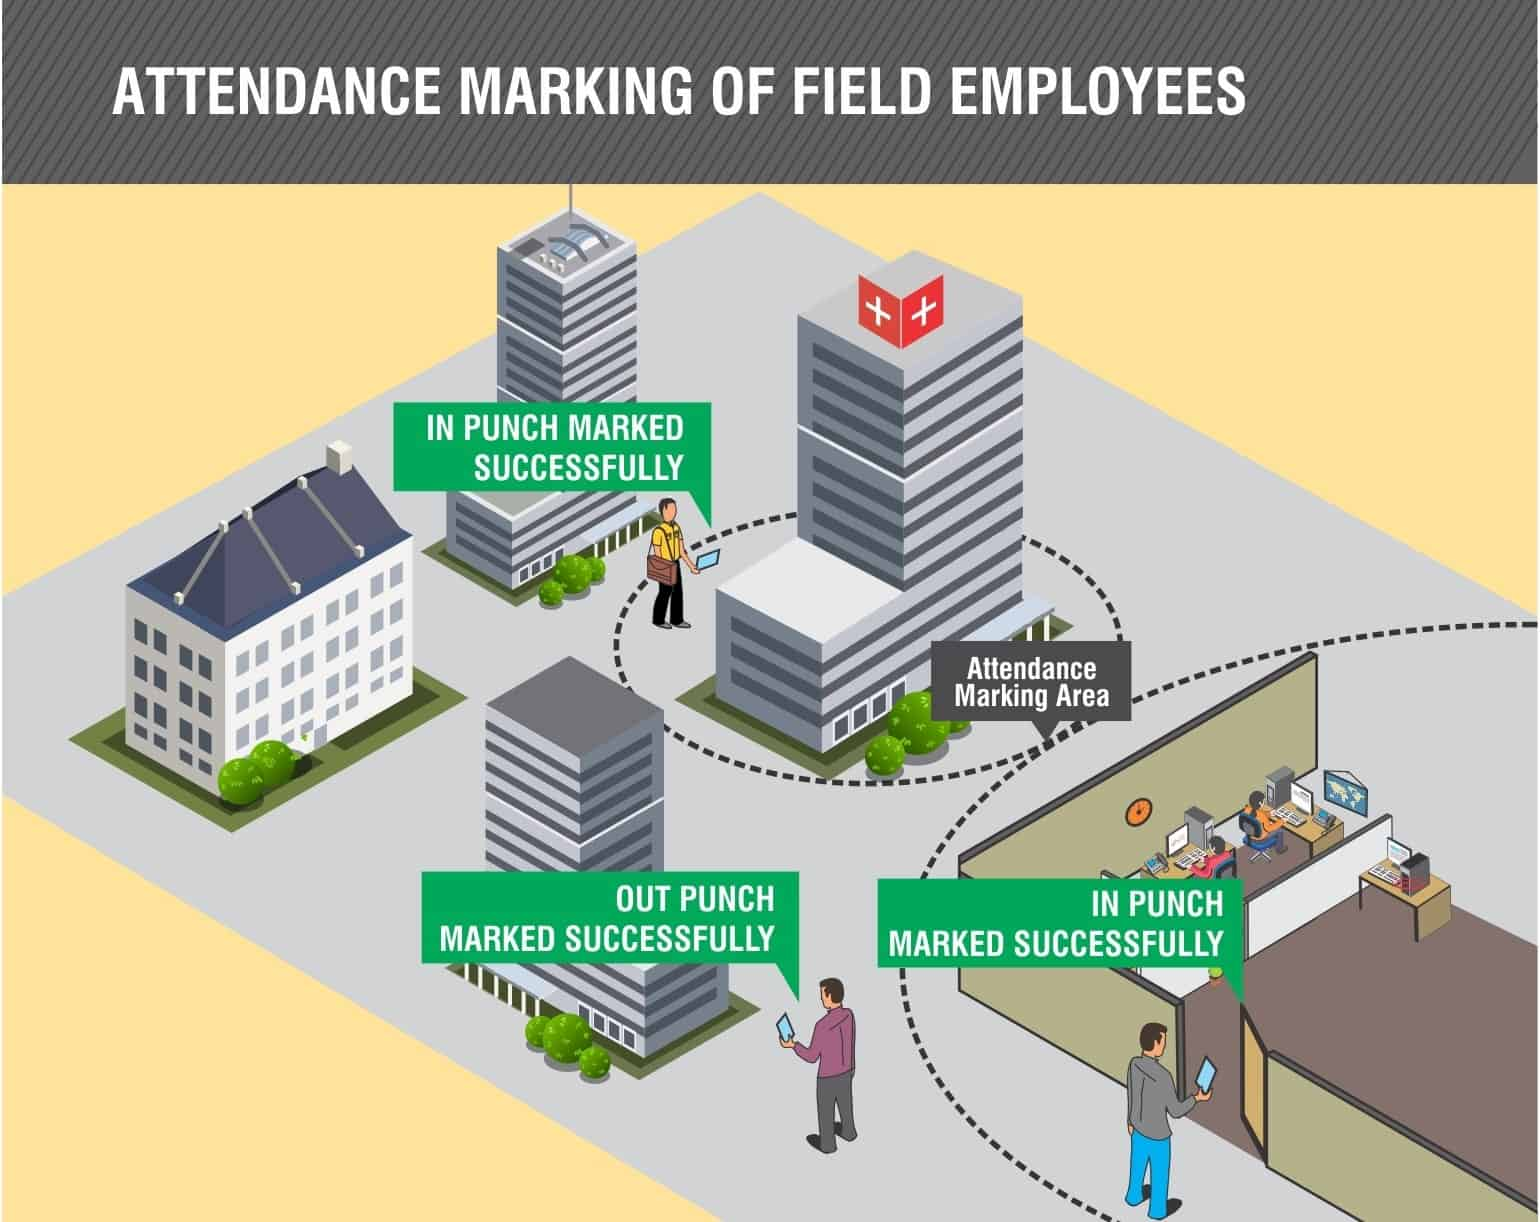 Attendance On Move for Field Employees